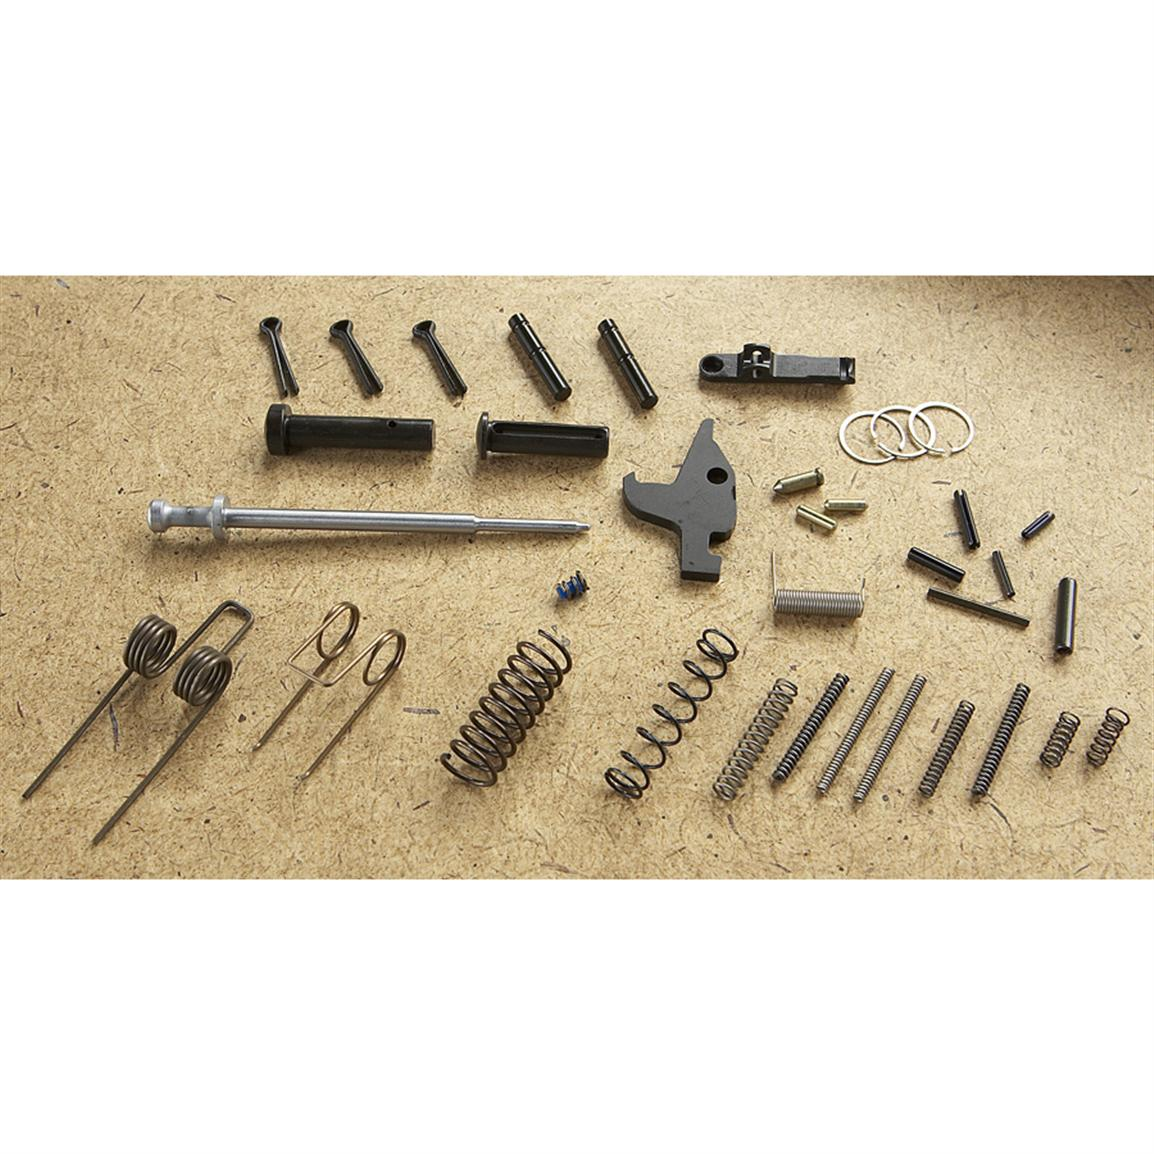 DPMS AR-15 Ultimate Repair Kit